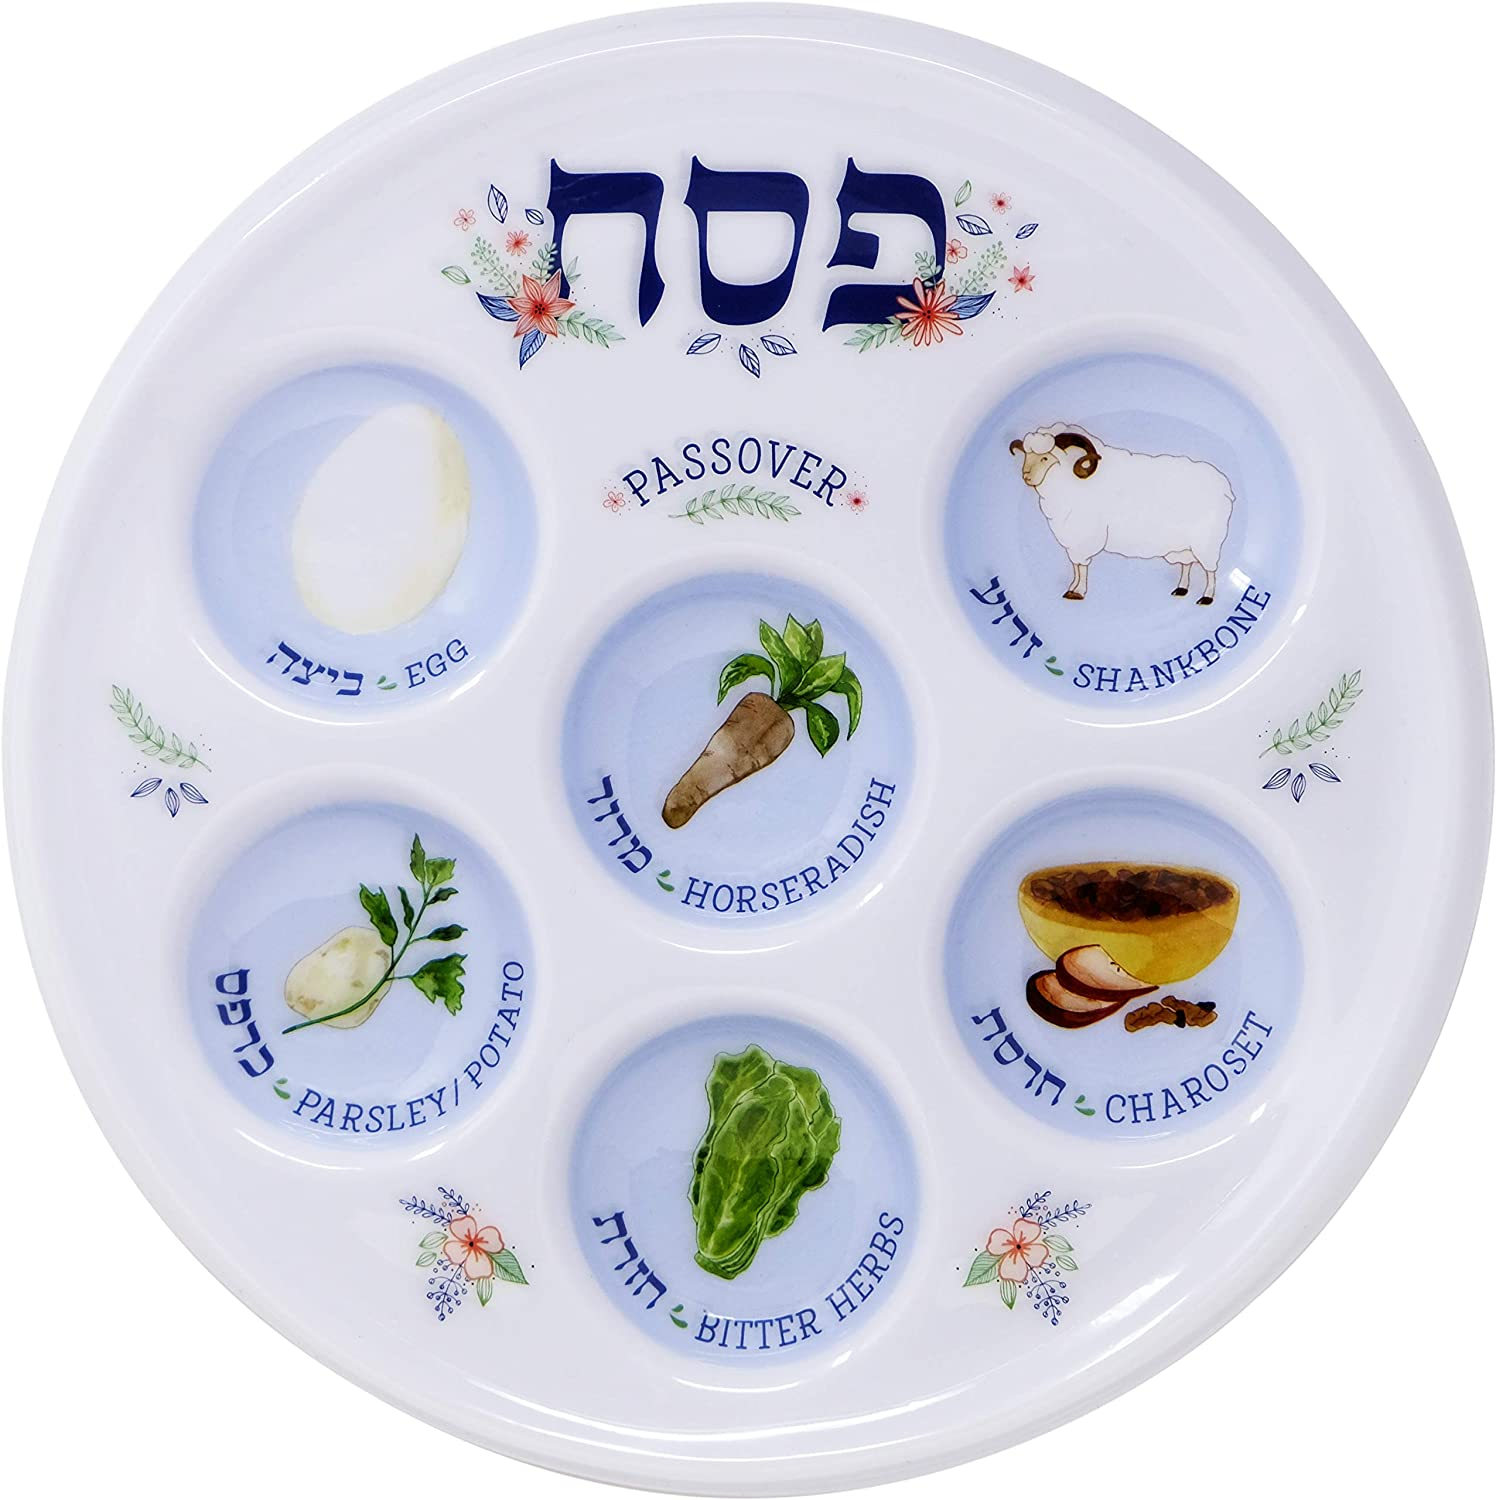 Passover Seder Plate Deluxe Disposable specialty shop 10